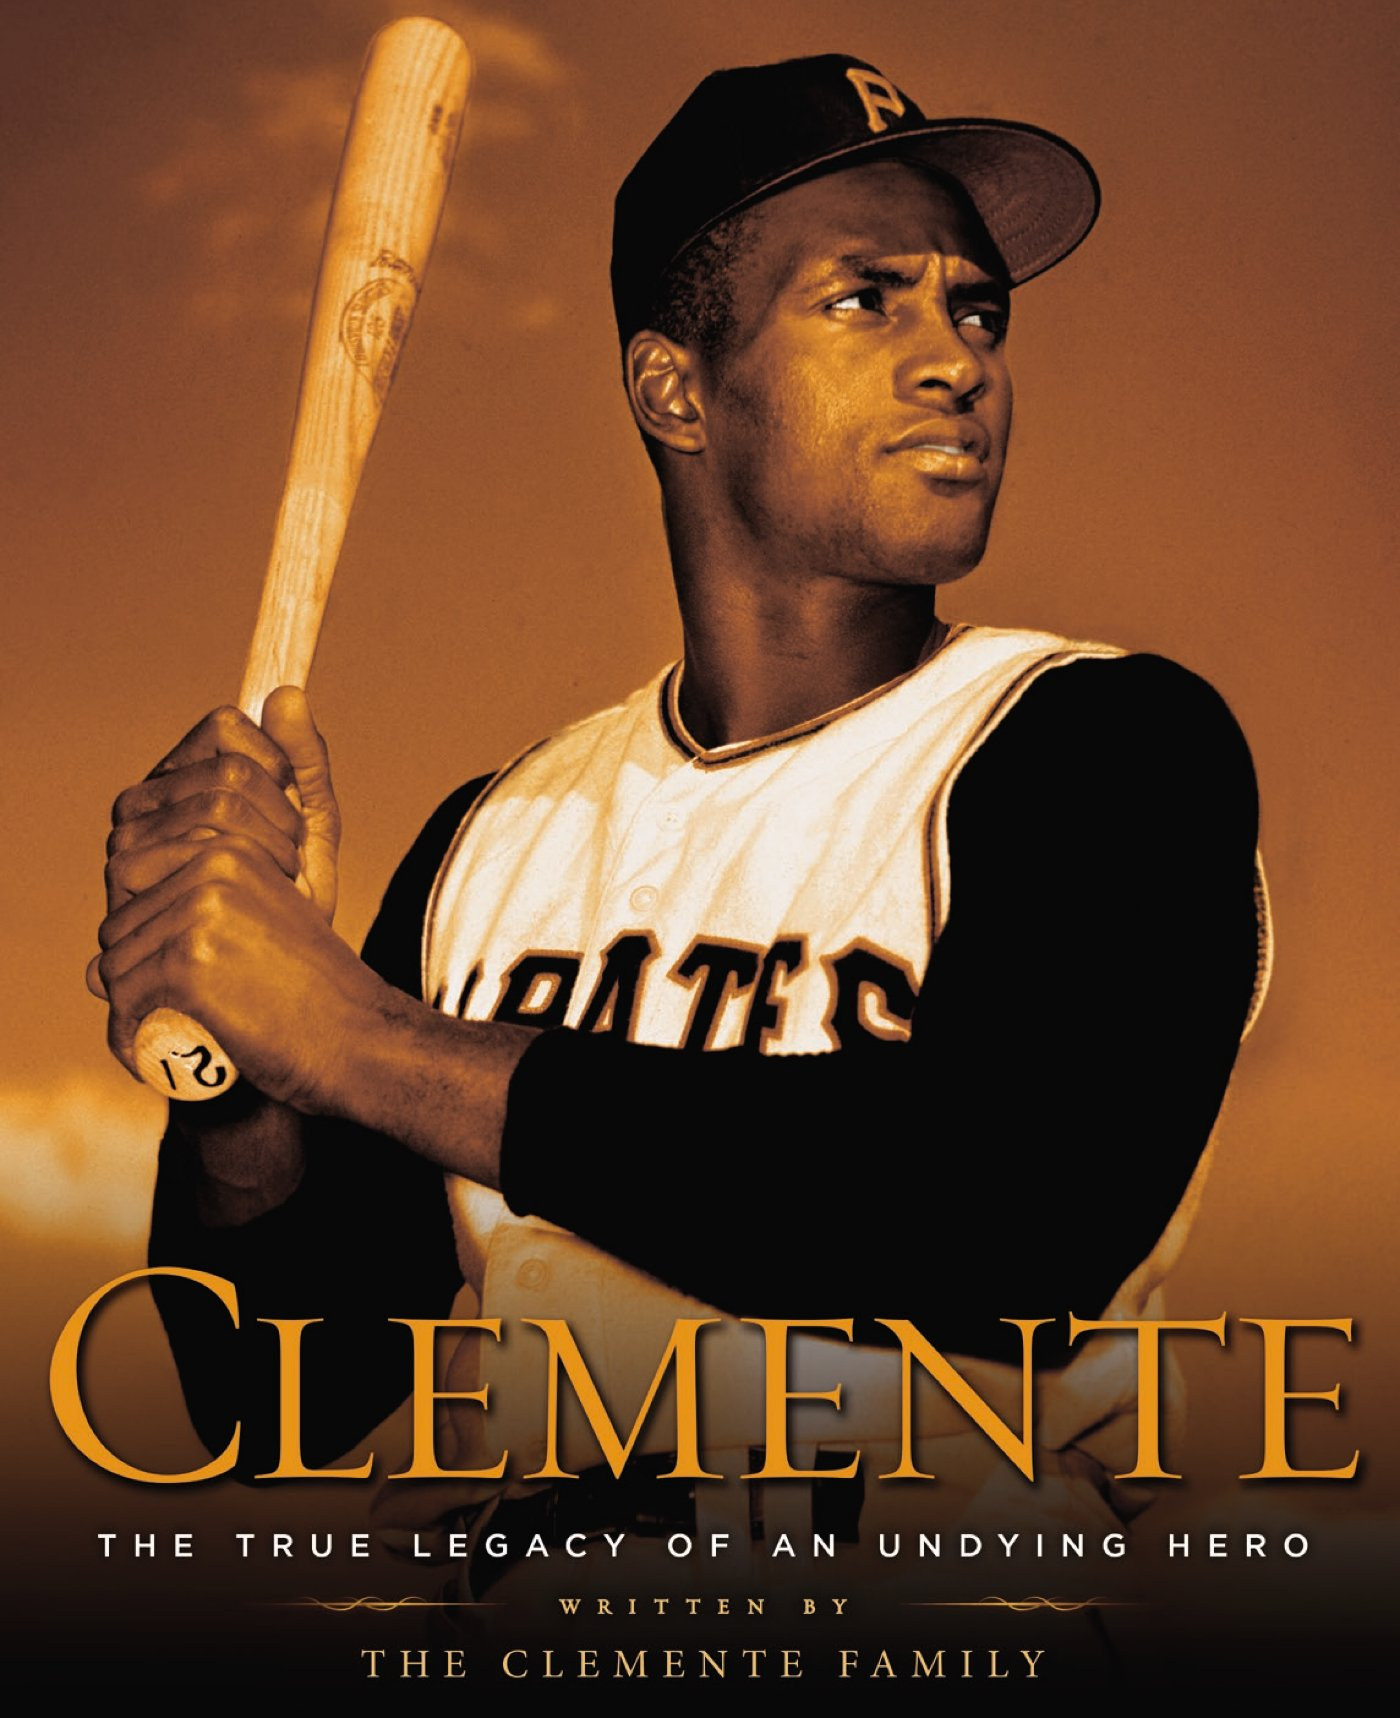 Clemente: The True Legacy of an Undying Hero